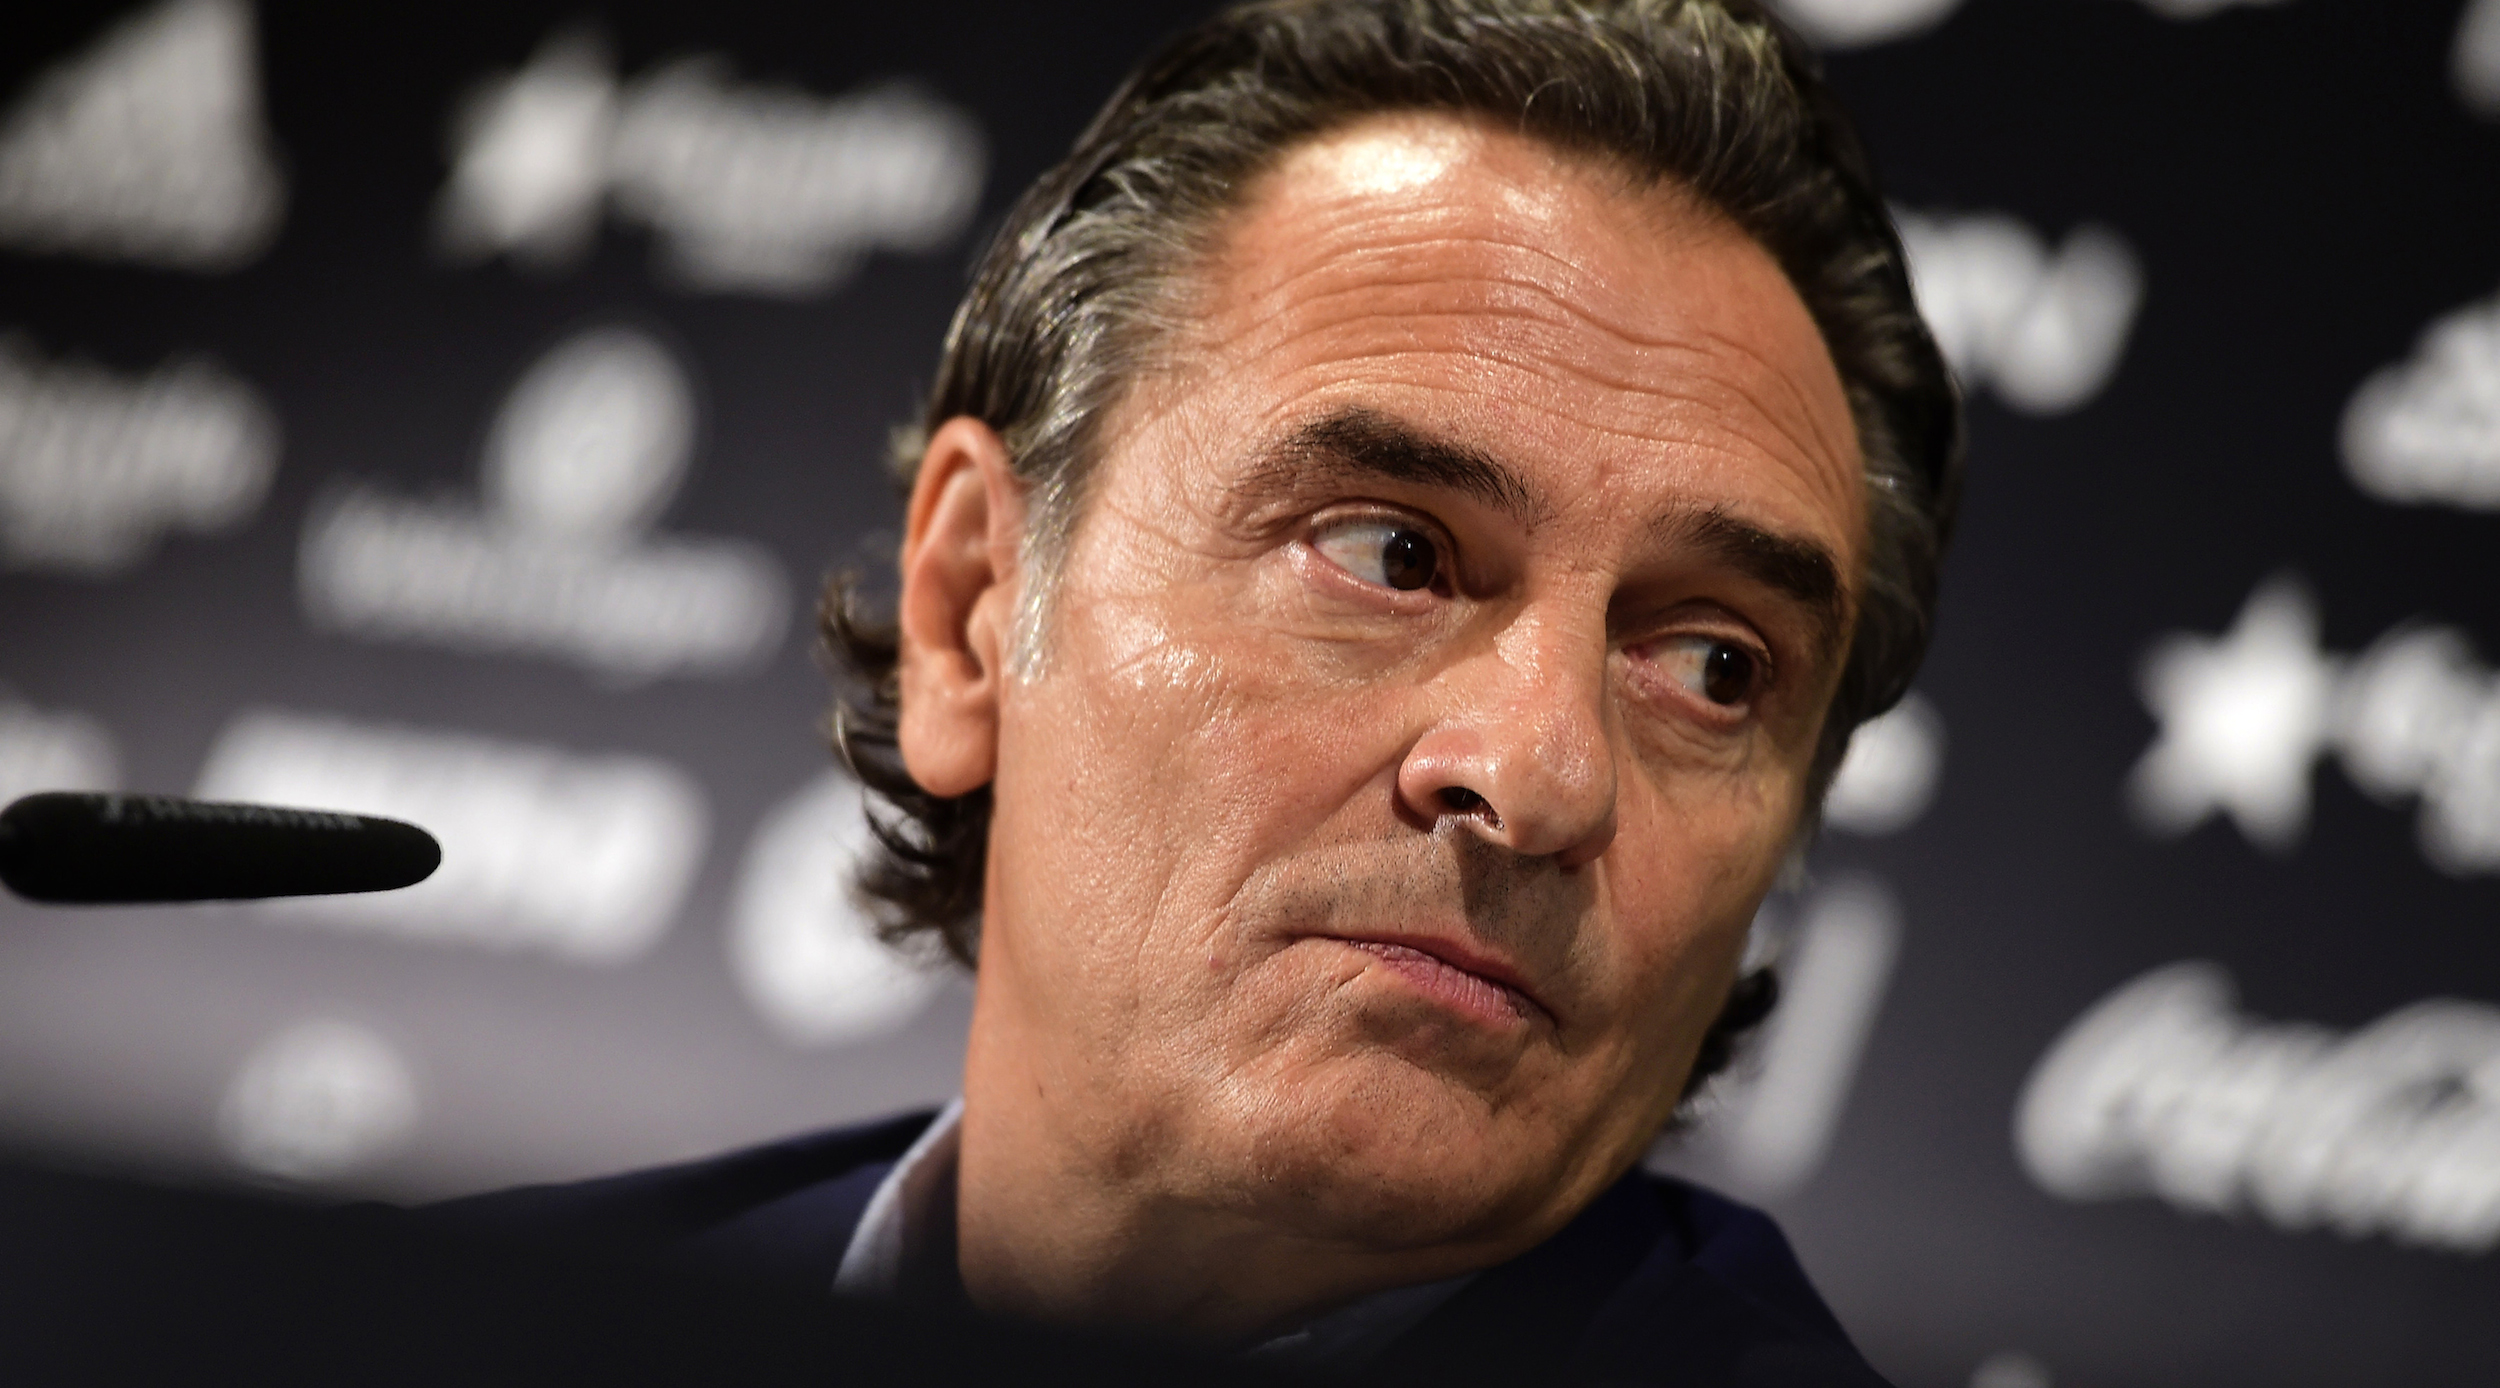 Valencia's Italian coach Cesare Prandelli looks on during his presentation to media at the Mestalla stadium in Valencia, on October 3, 2016. / AFP / JOSE JORDAN (Photo credit should read JOSE JORDAN/AFP/Getty Images)